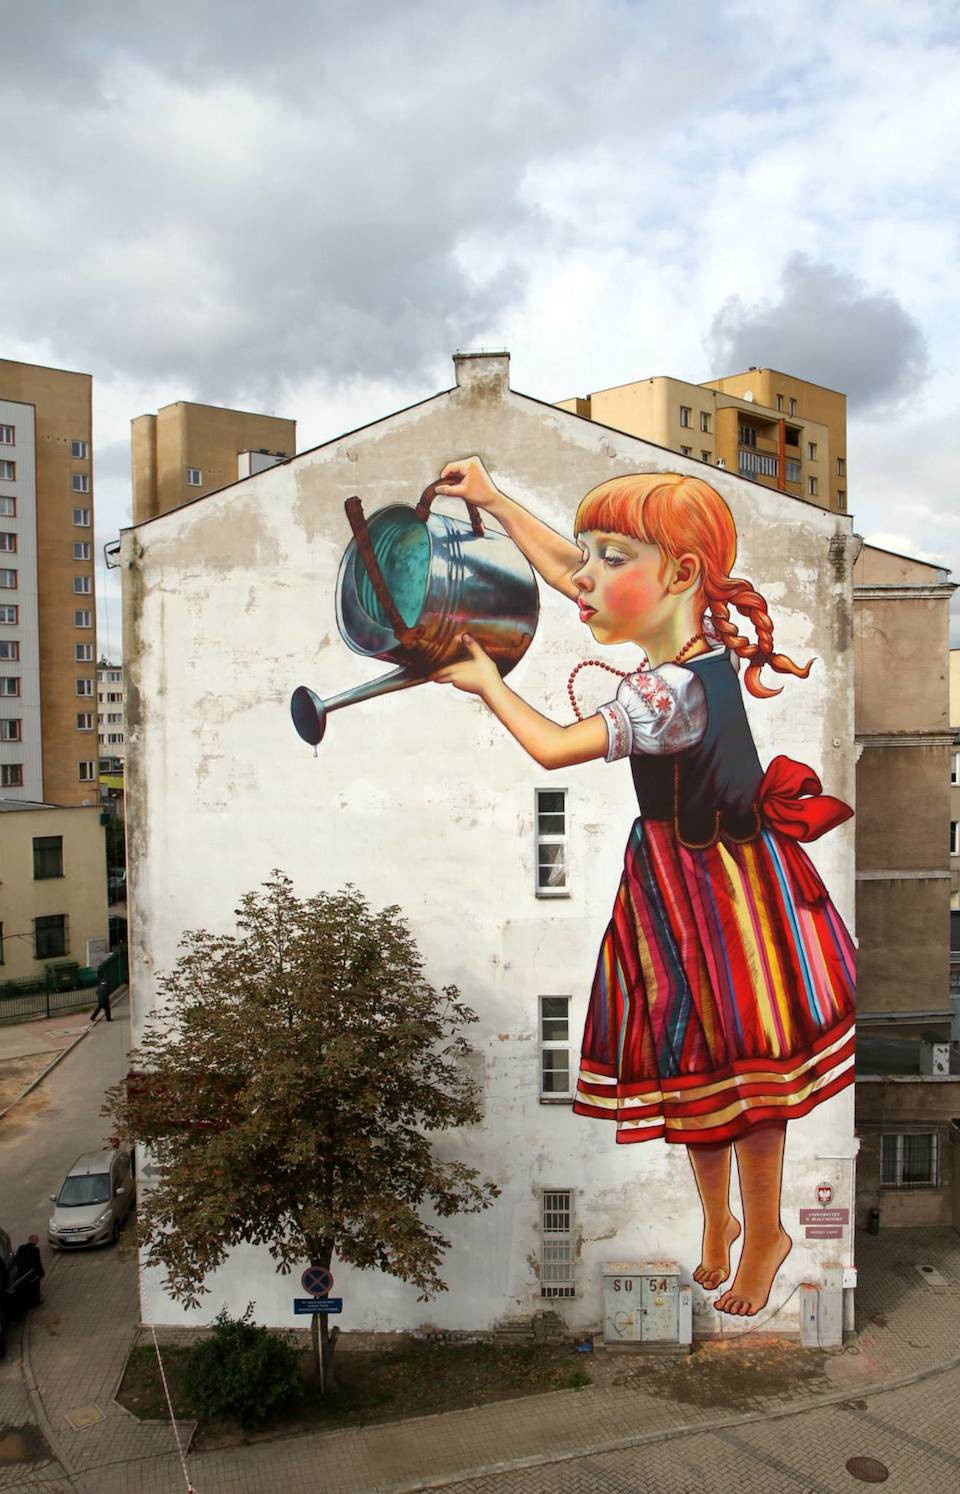 Mural-by-Natalii-Rak-at-Folk-on-the-Street-in-Białymstoku-Poland-3 mindre